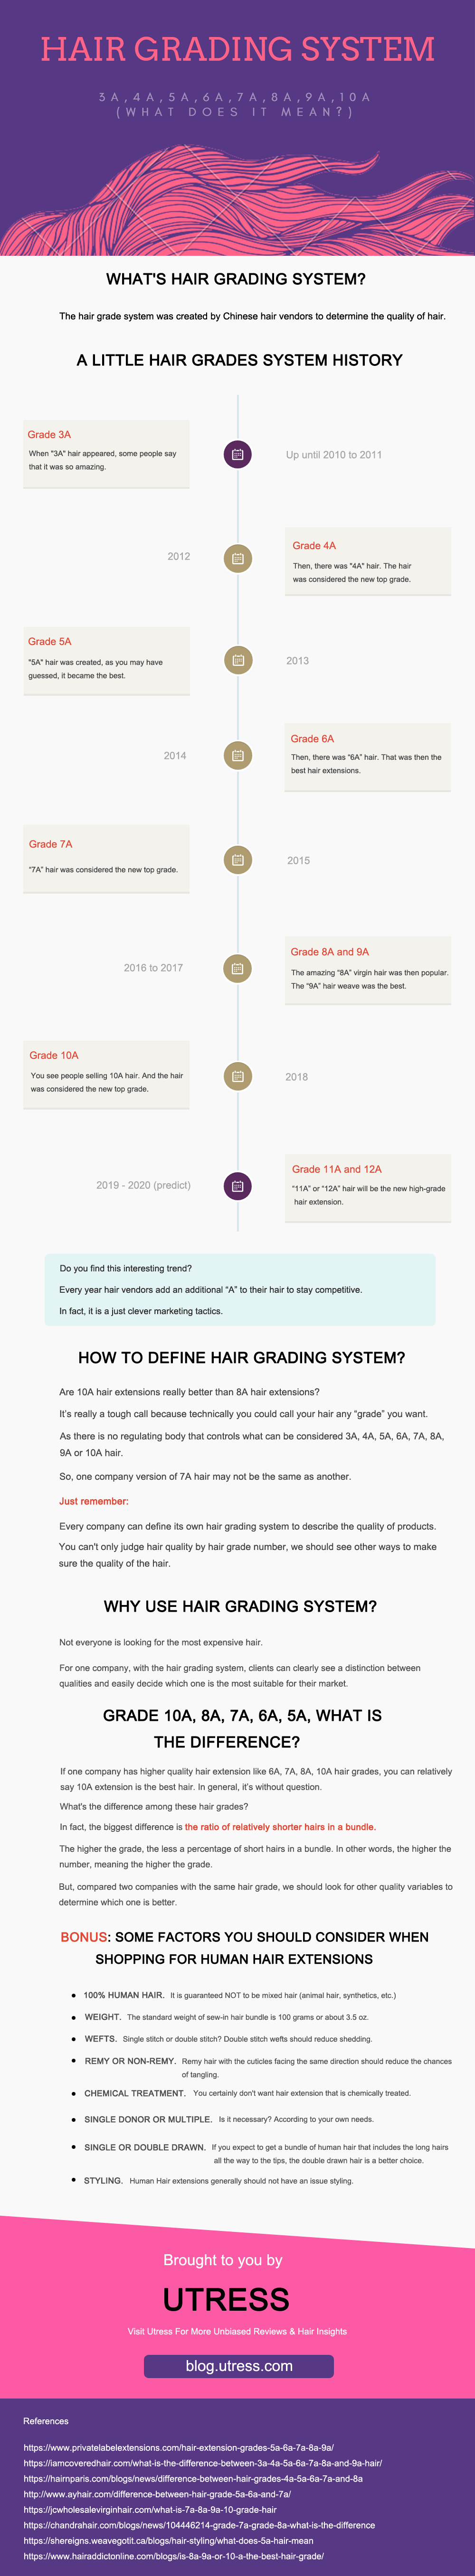 hair grades system infographic_3